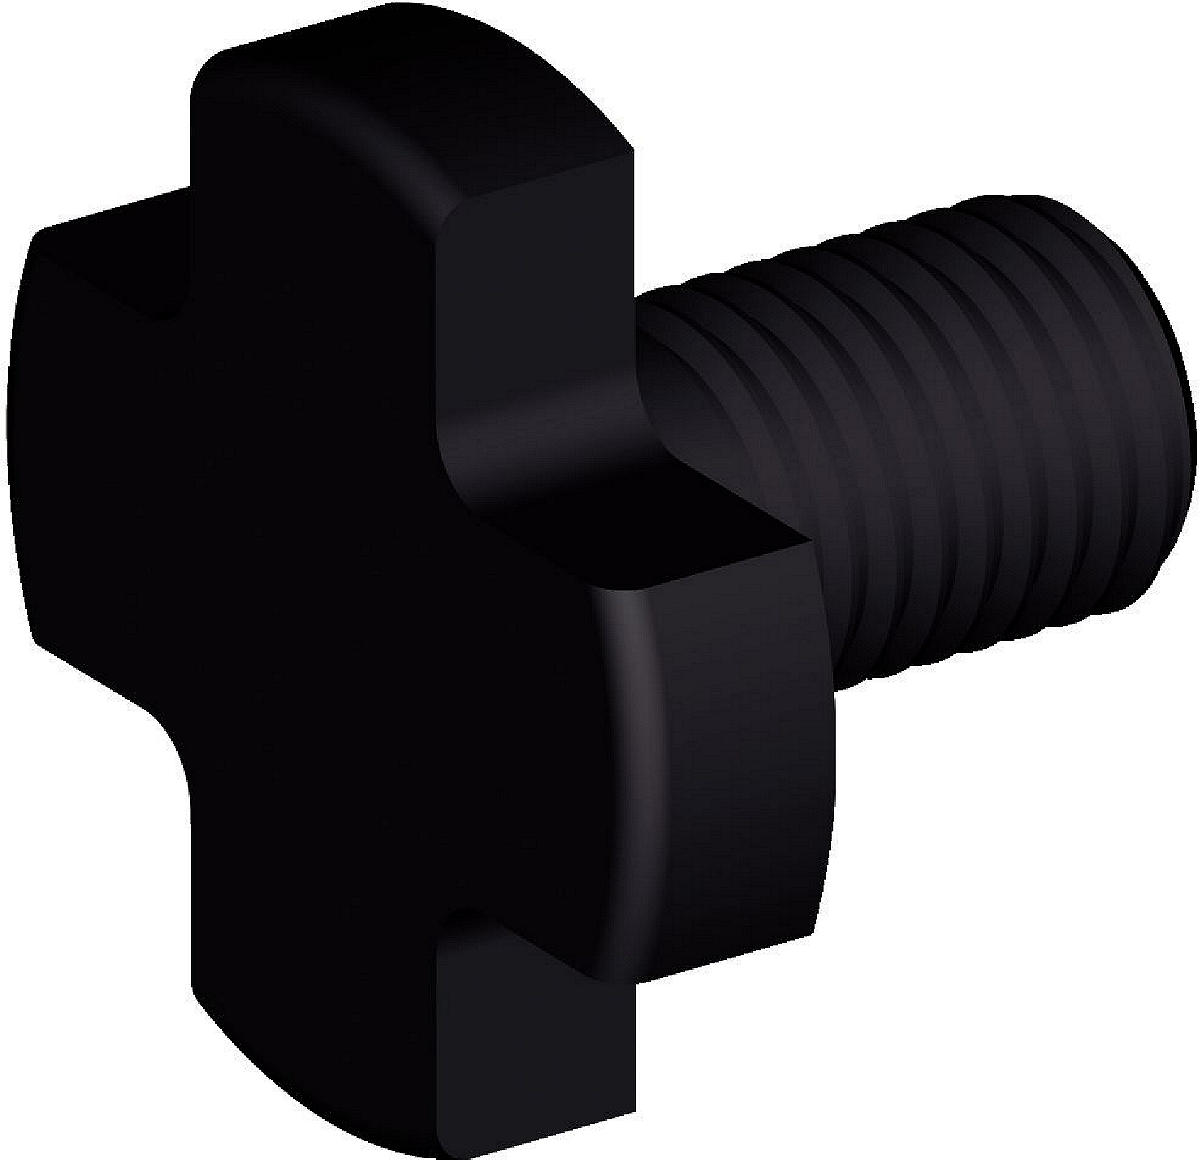 Shell Mill Adapter Lock Screws